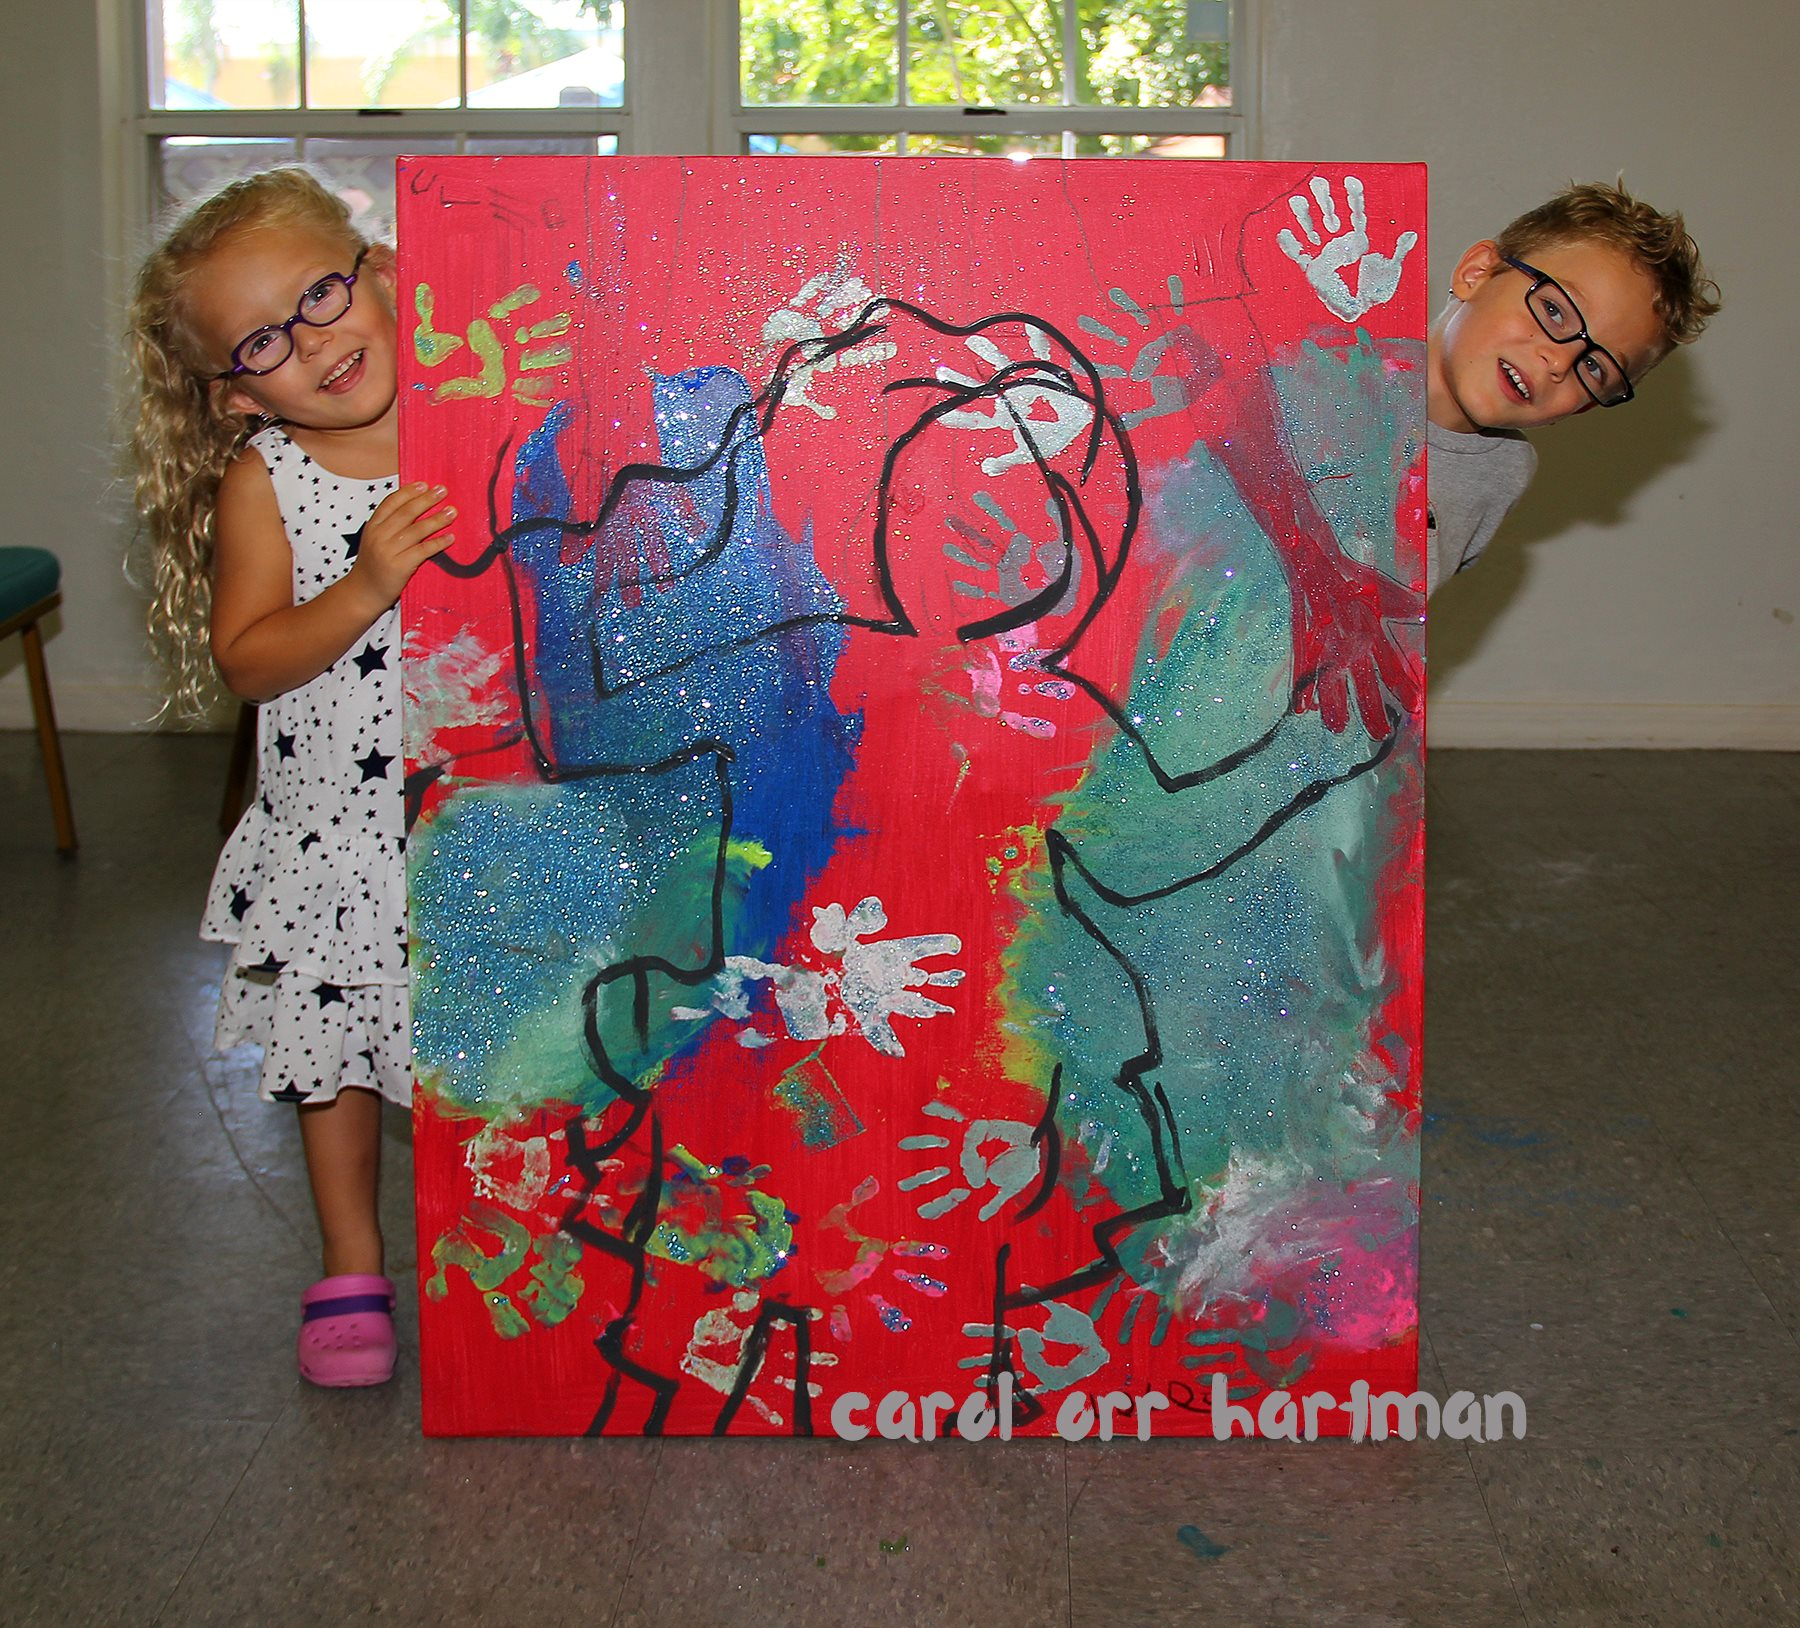 SWFL Children's Charities, Inc. introduces 2017 Child Artists, Leo and Lola Grabinski